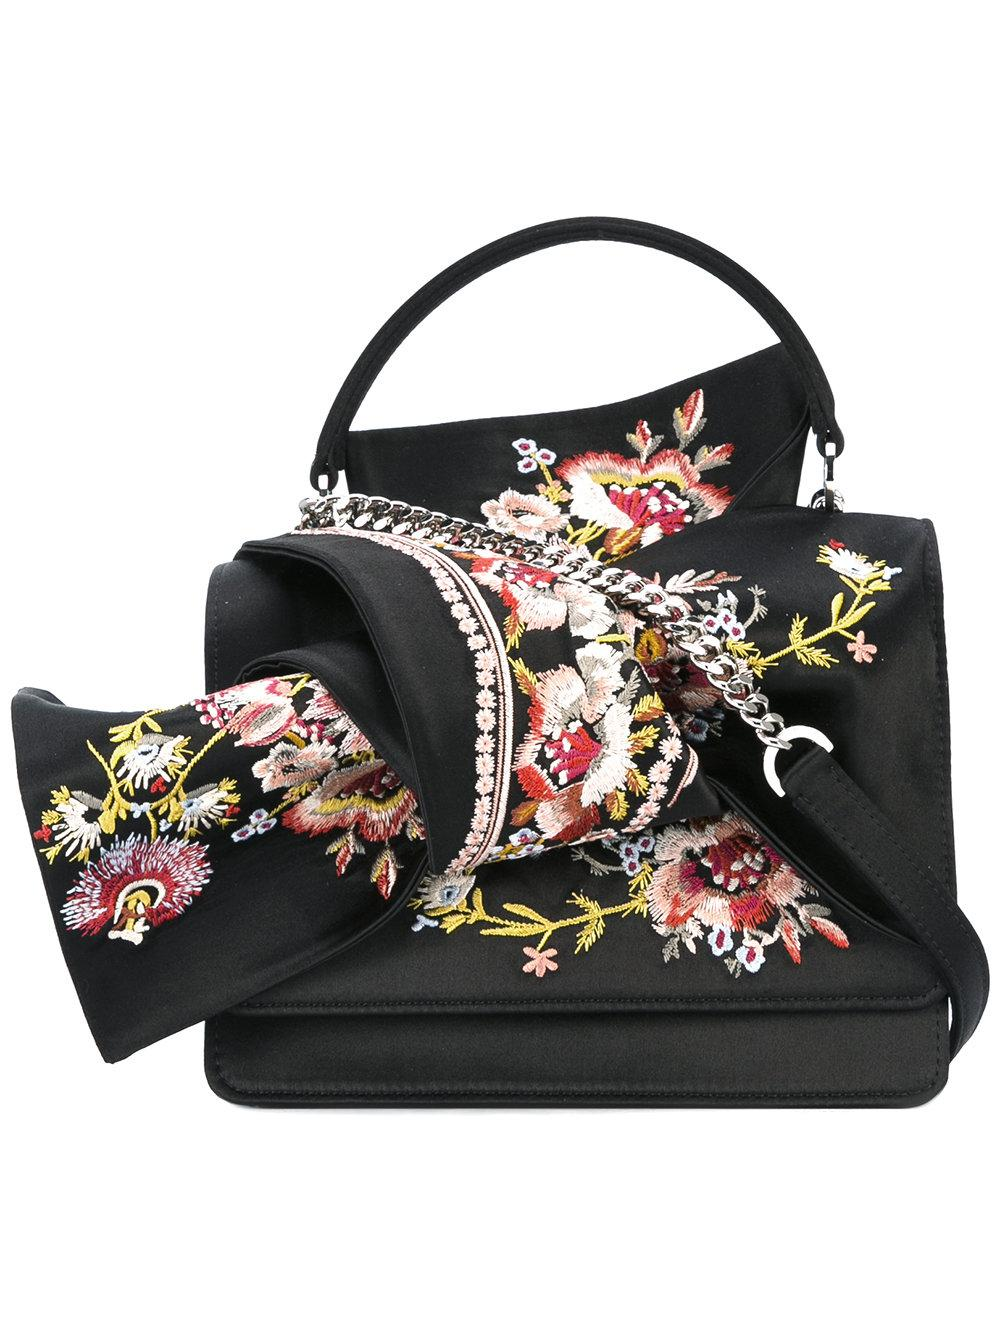 Nu00b021 Floral Embroidery Tote Bag In Black | Lyst